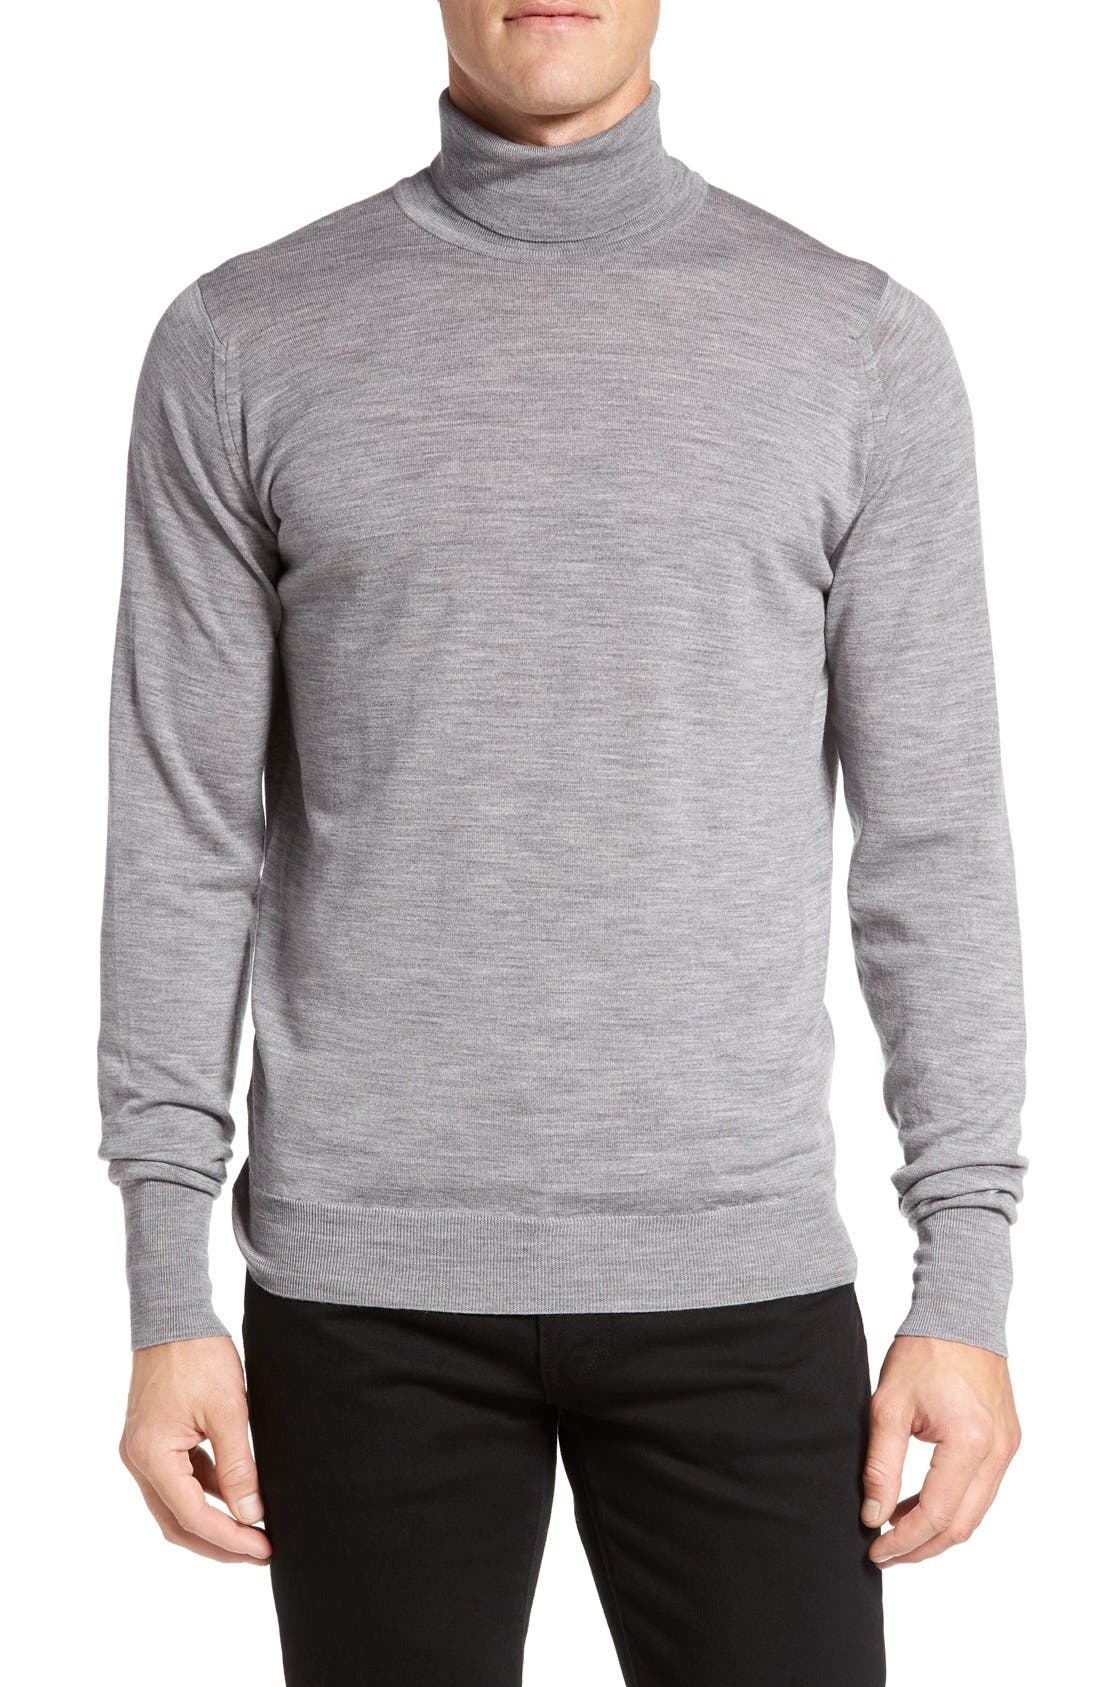 Alternate Image 1 Selected - John Smedley 'Richards' Easy Fit Turtleneck Wool Sweater